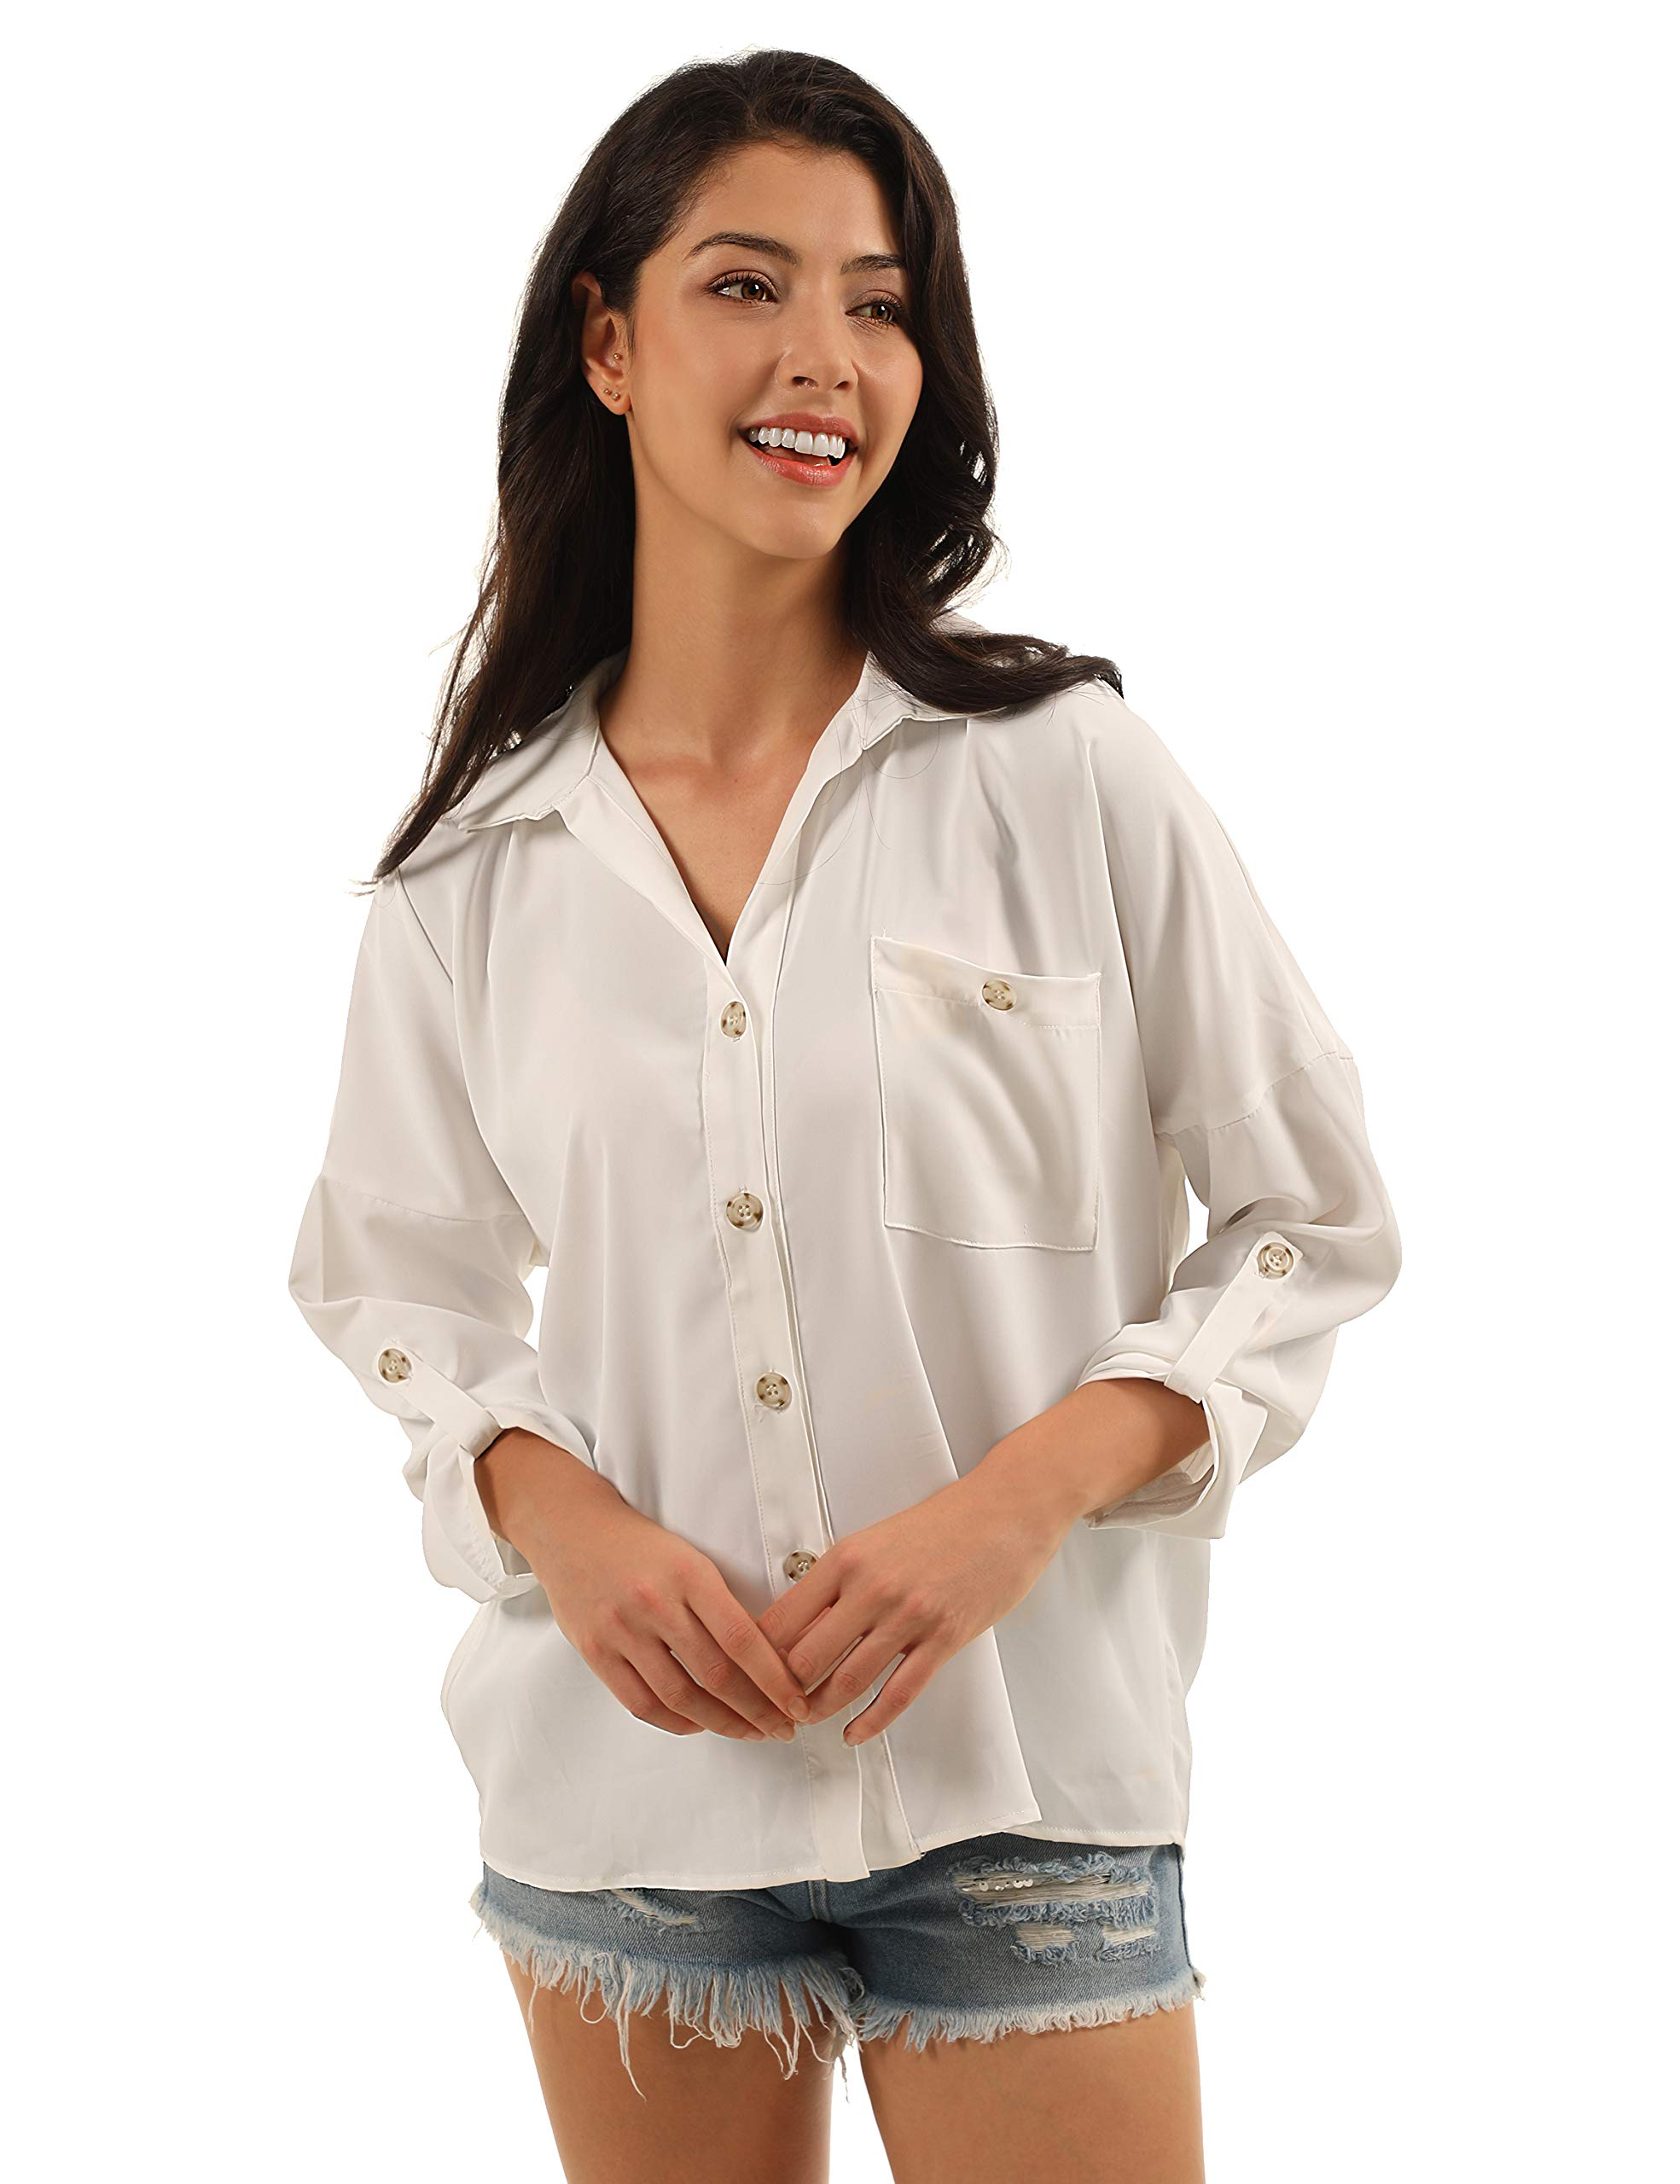 Blooming Jelly Womens Long Sleeve Button Down Shirt Collared V Neck Blouse Roll Up Sleeve Pocket Casual Tops (x-Large, White)